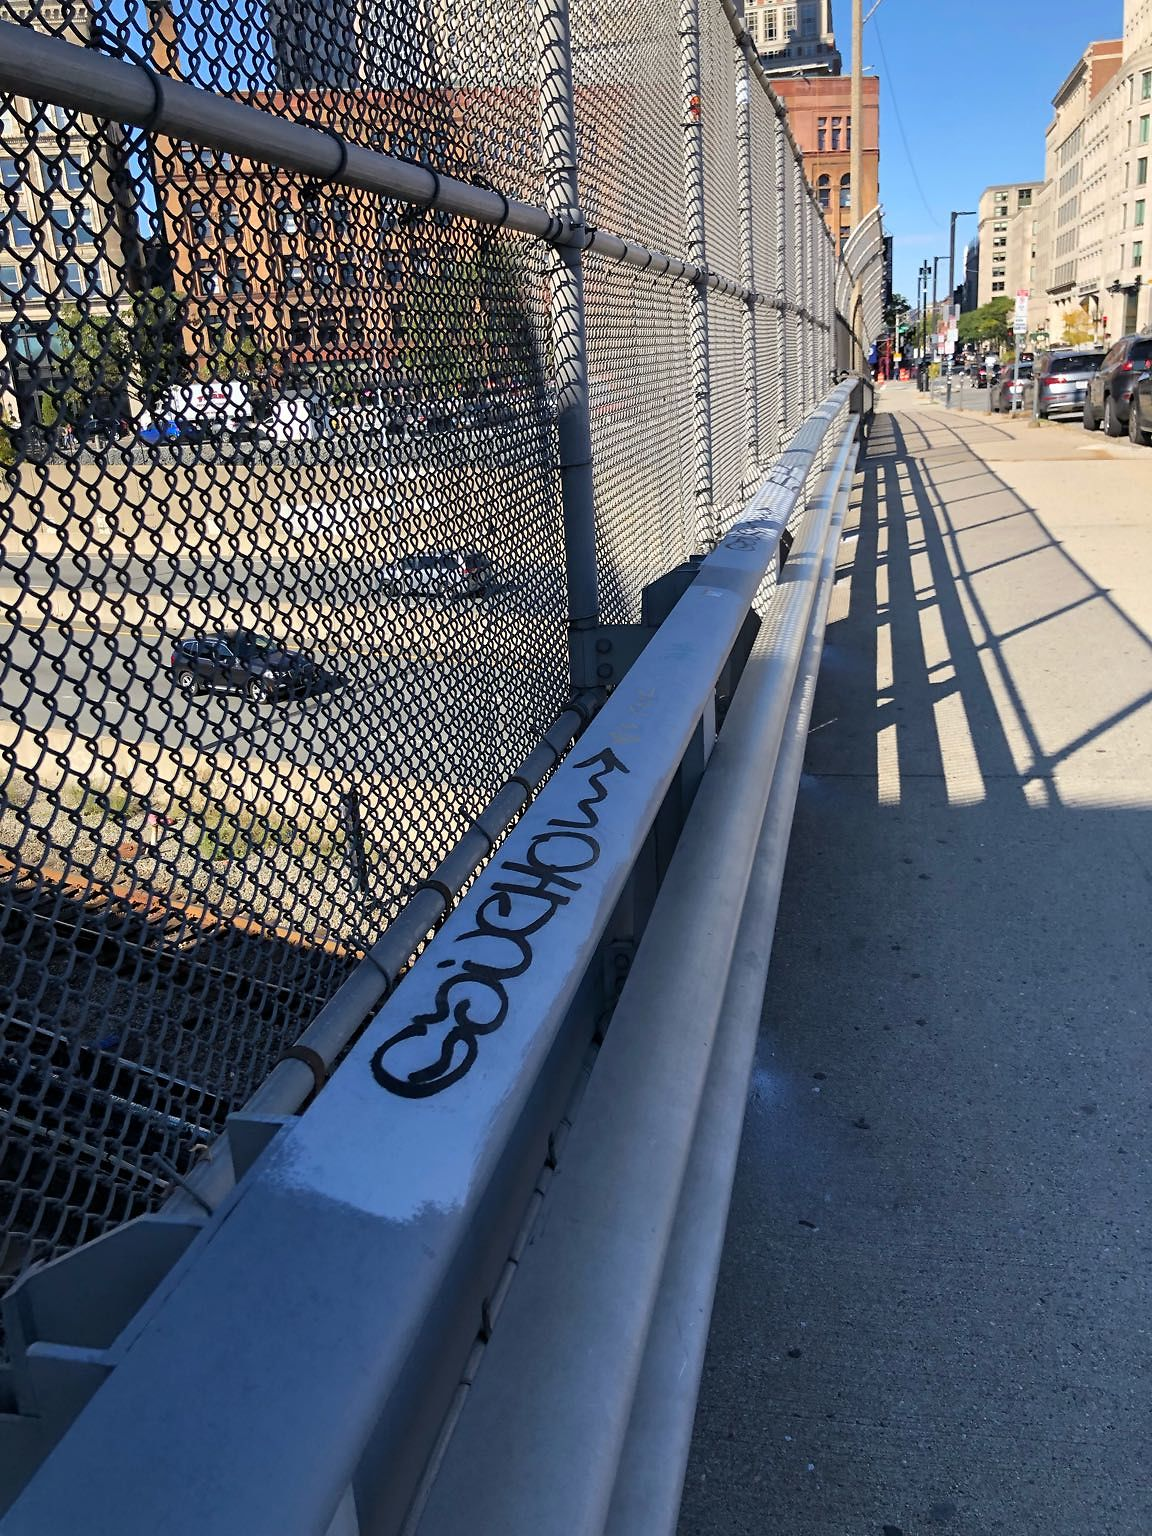 Both railings on Berkeley that go over 90 have tons of graffiti on them. Please correct both sides thanks